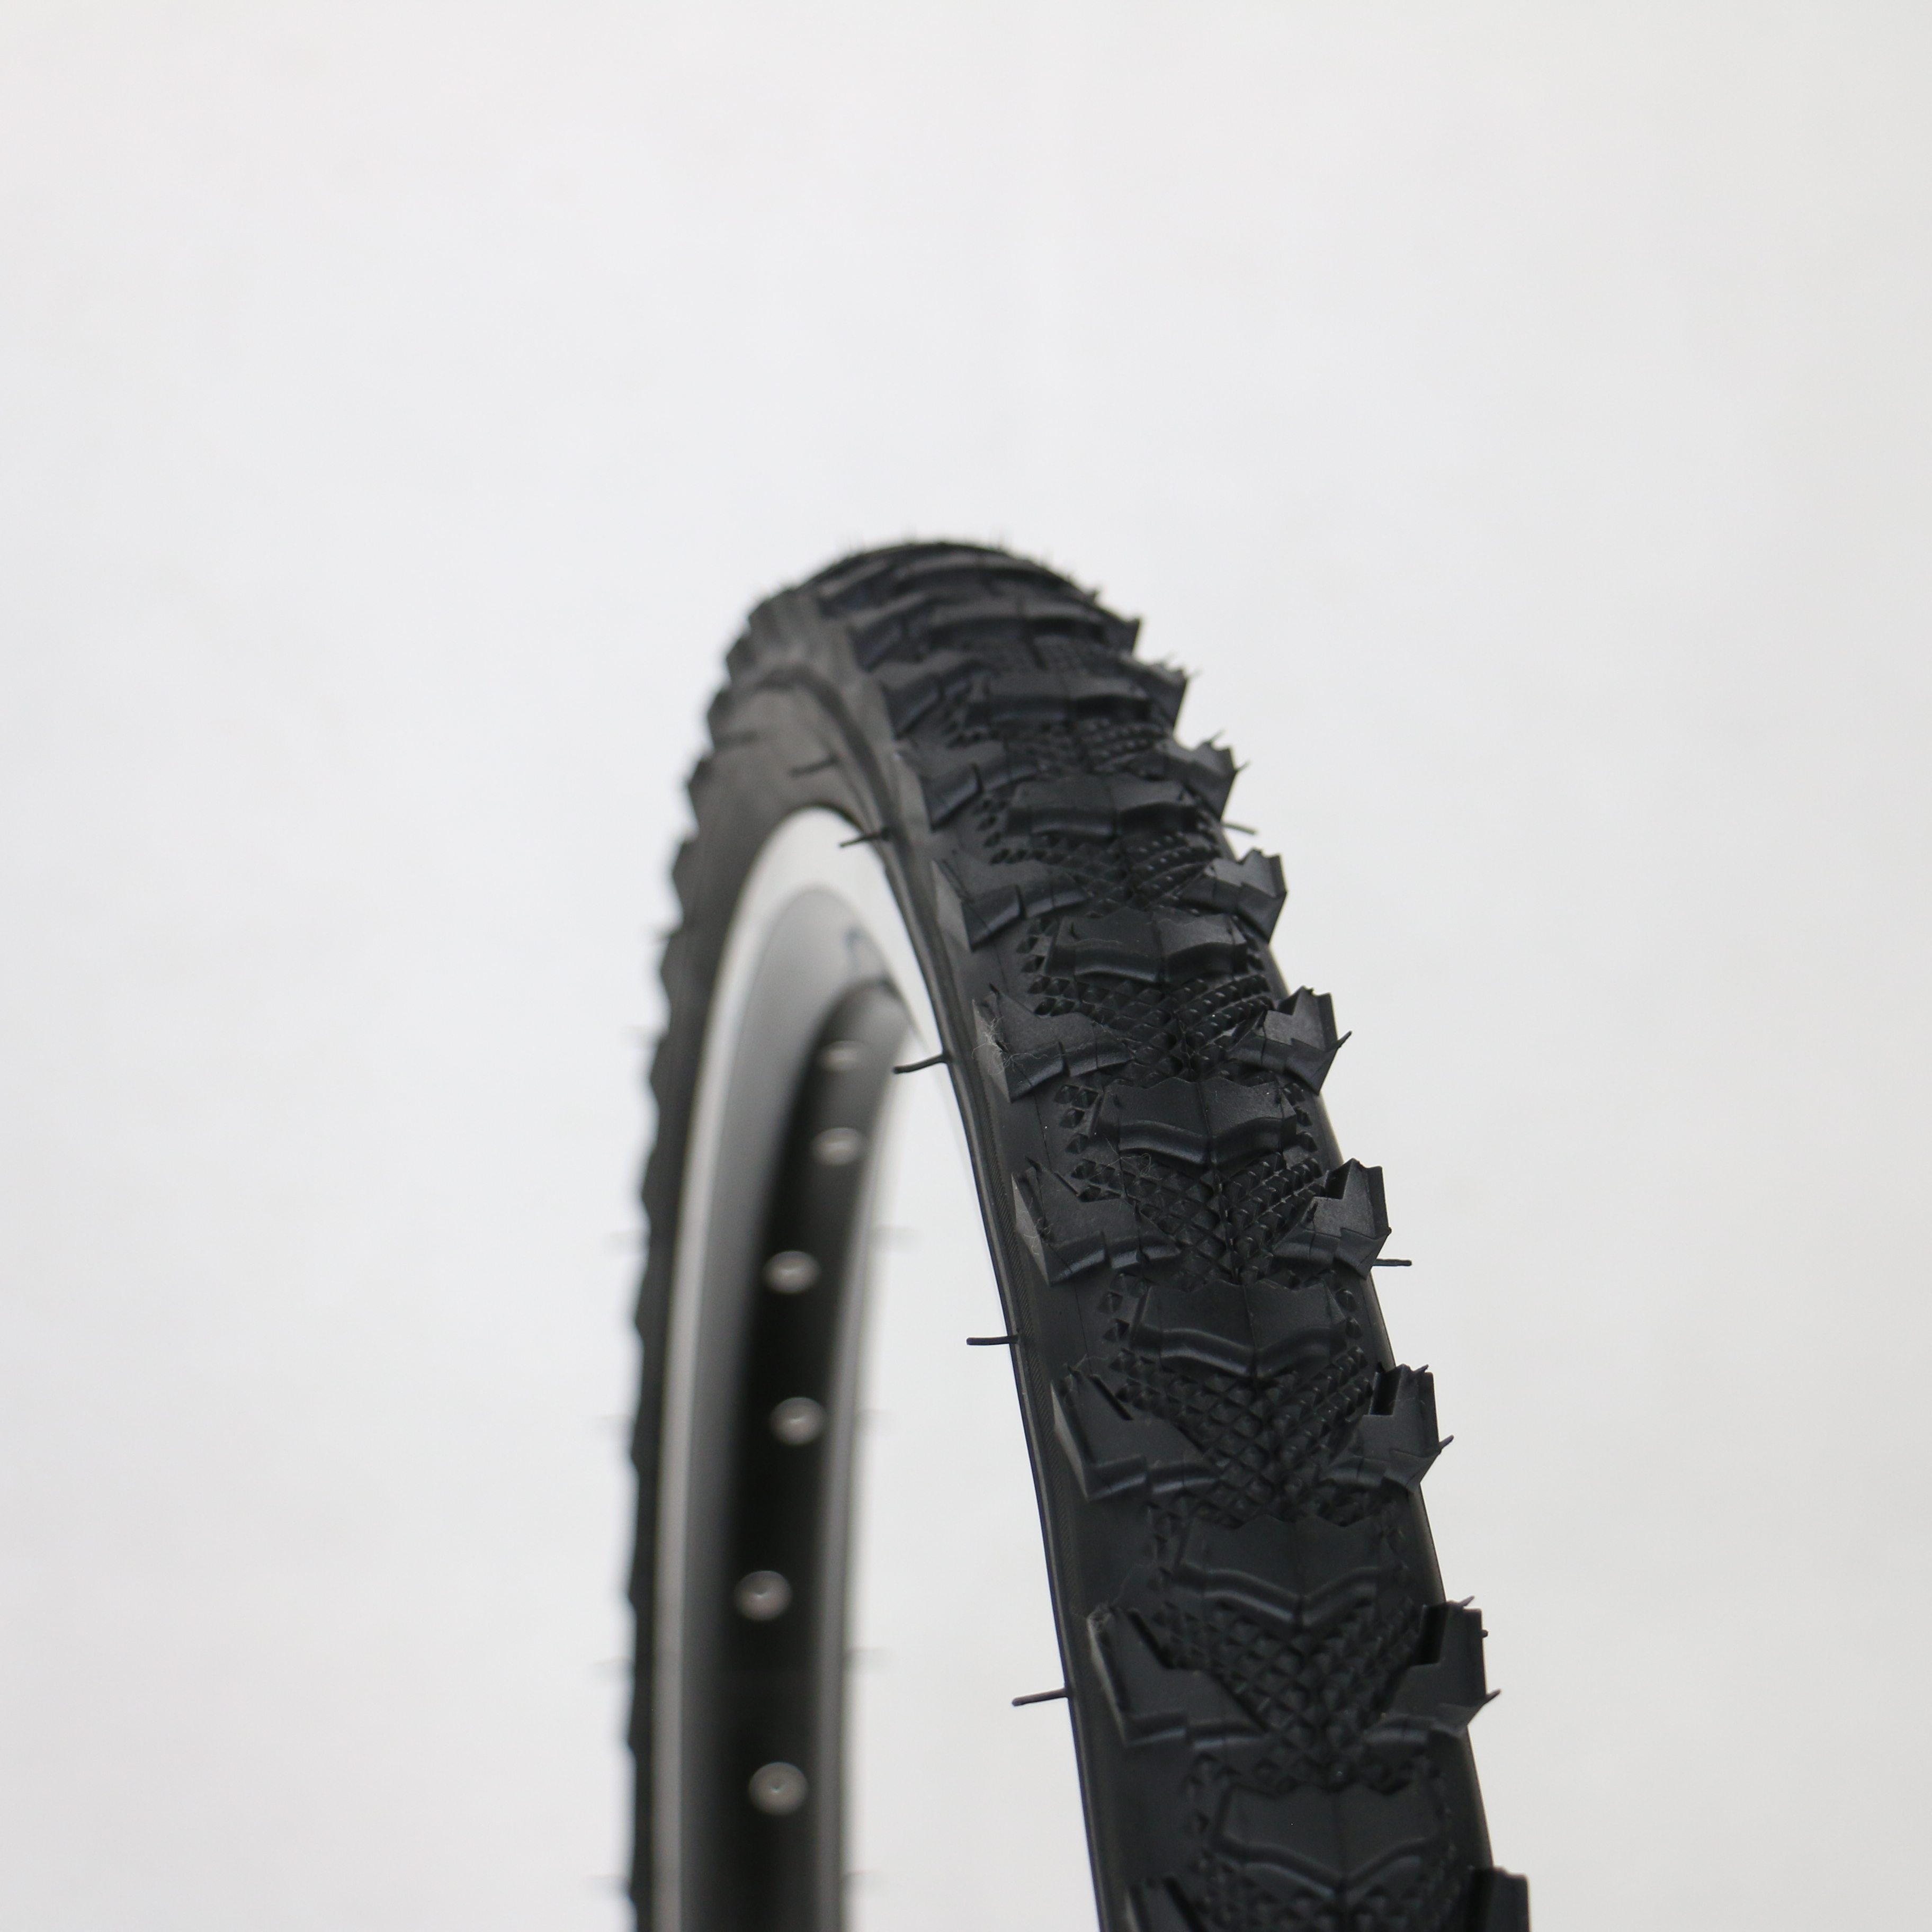 """20X1.75 BICYCLE BLACK STREET clincher TIRE 1.75 wide  FOR 20/"""" BIKE BRAND VARIES"""